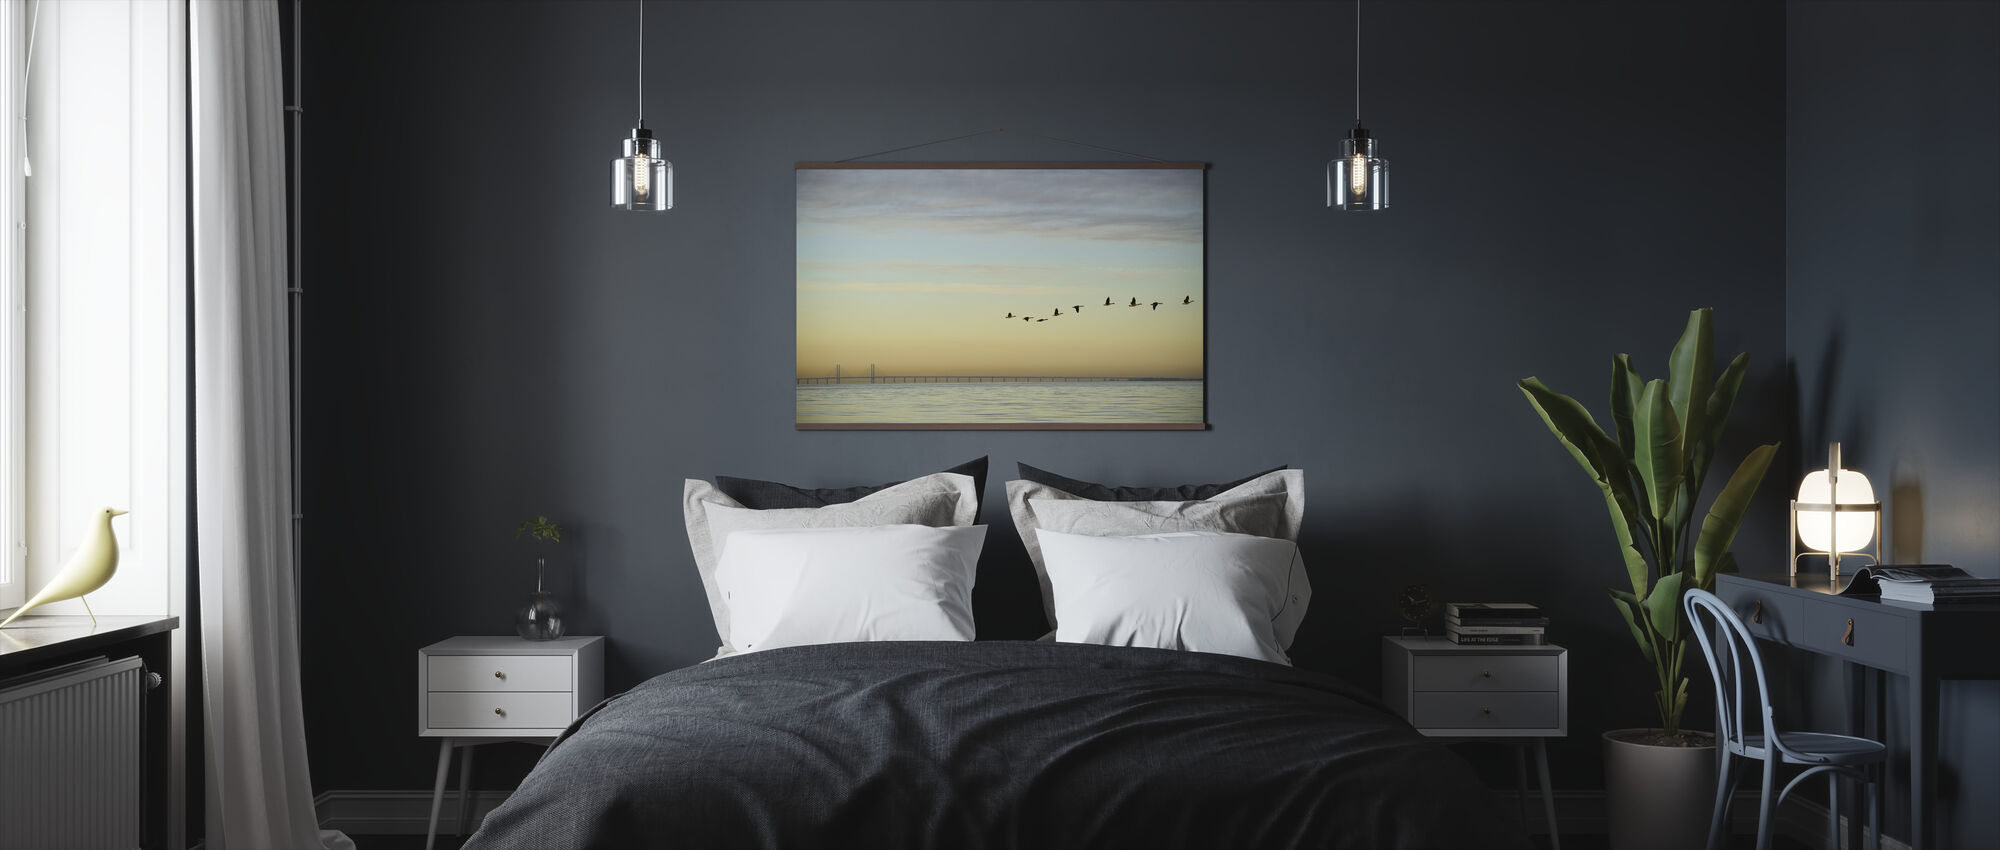 Flock of Birds - Poster - Bedroom